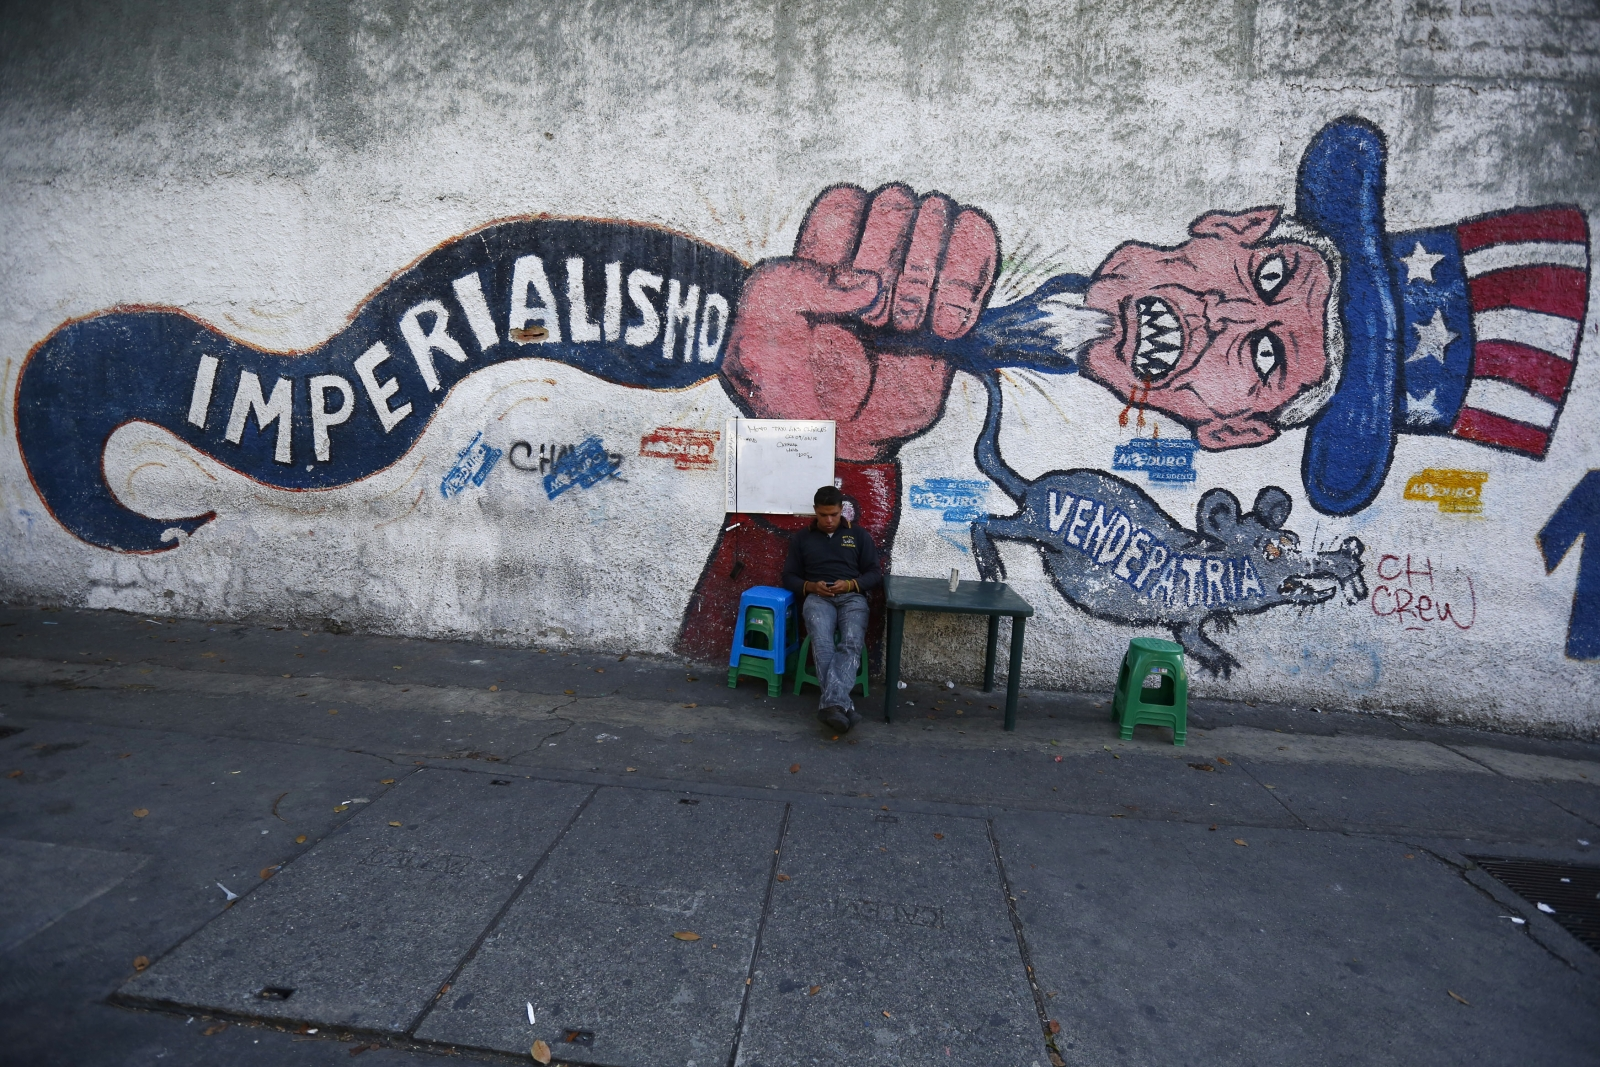 US Venezuela threat graffiti